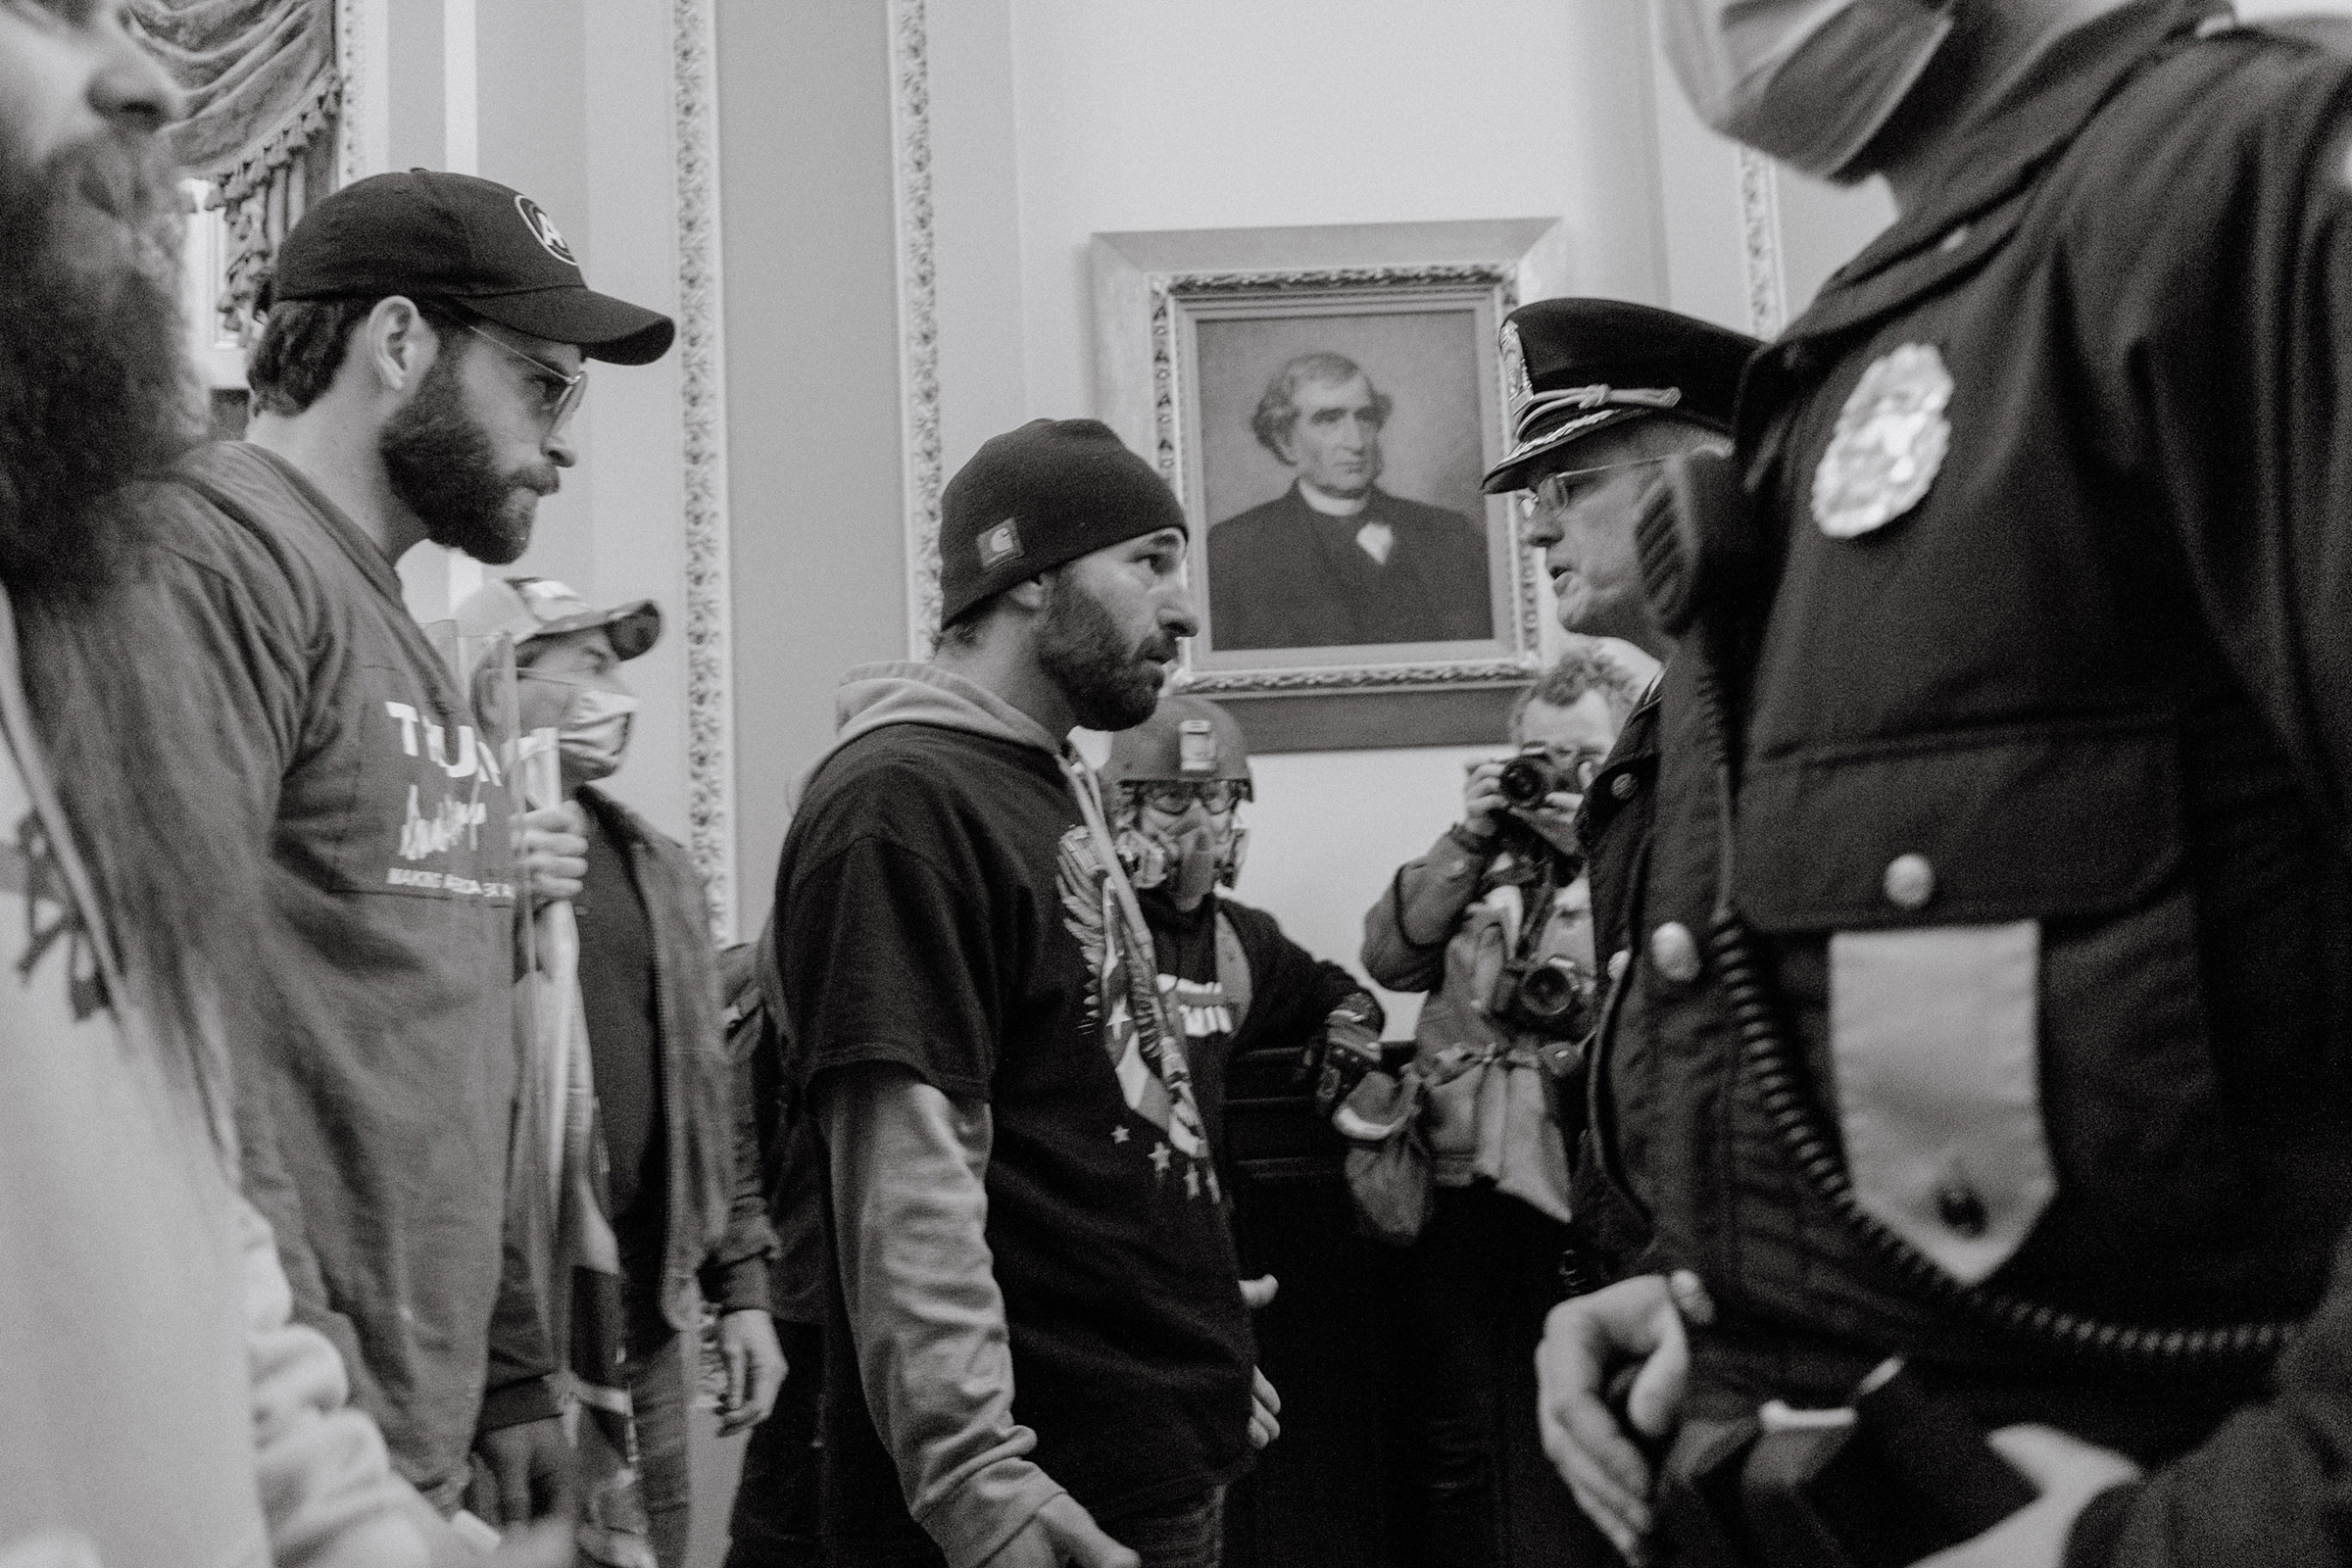 Pro-Trump rioters confront Capitol Police officers after breaking into the Capitol.